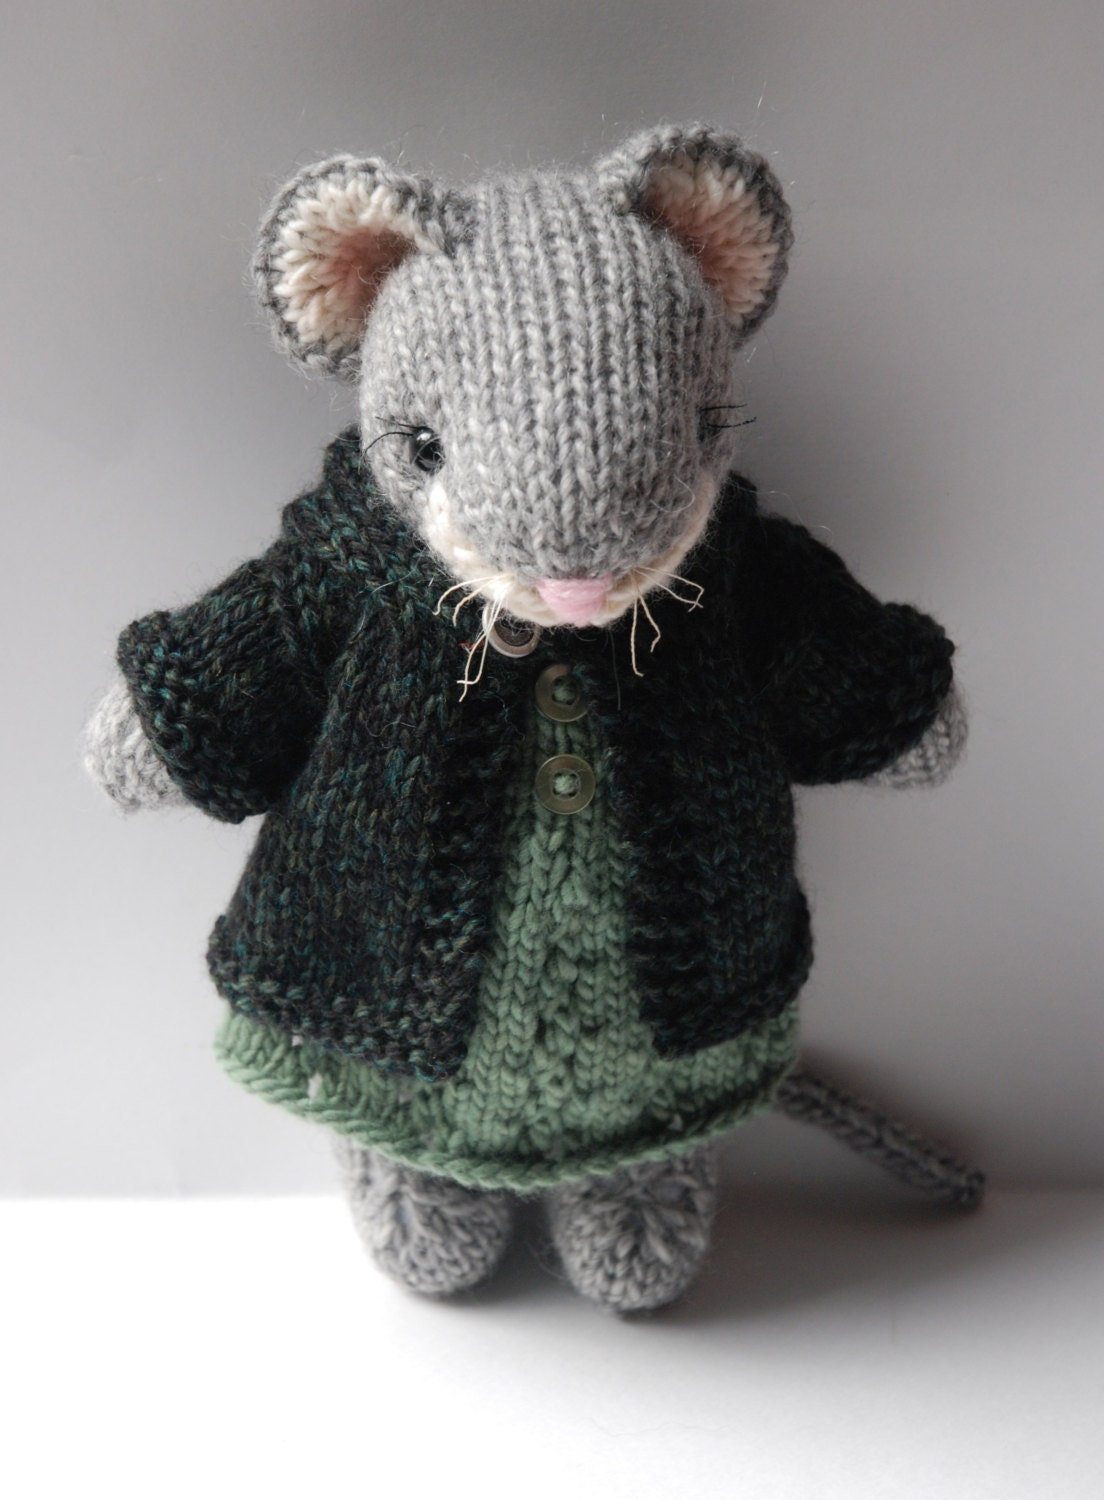 Knitting Pattern Toy Mice : Knitted Woodland Mouse Toy in Autumn Dress and Tweed Hoodie